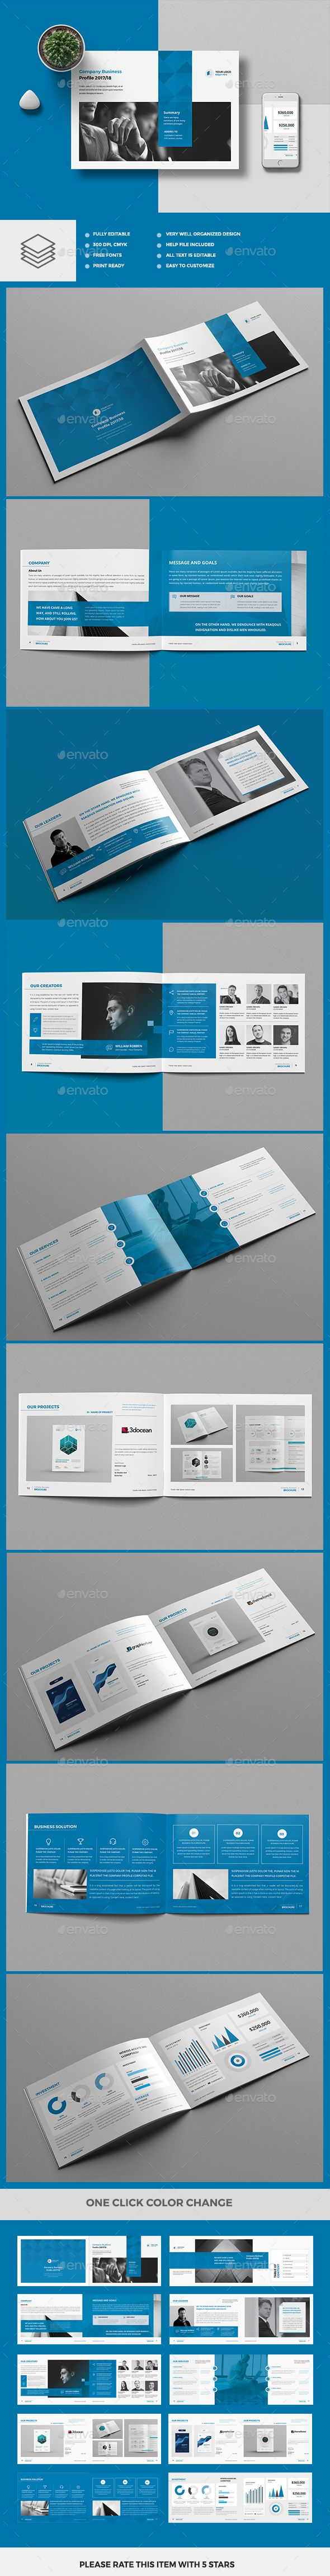 #Company Profile 20 Pages - Corporate #Brochures Download here: https://graphicriver.net/item/company-profile-20-pages/19973721?ref=alena994